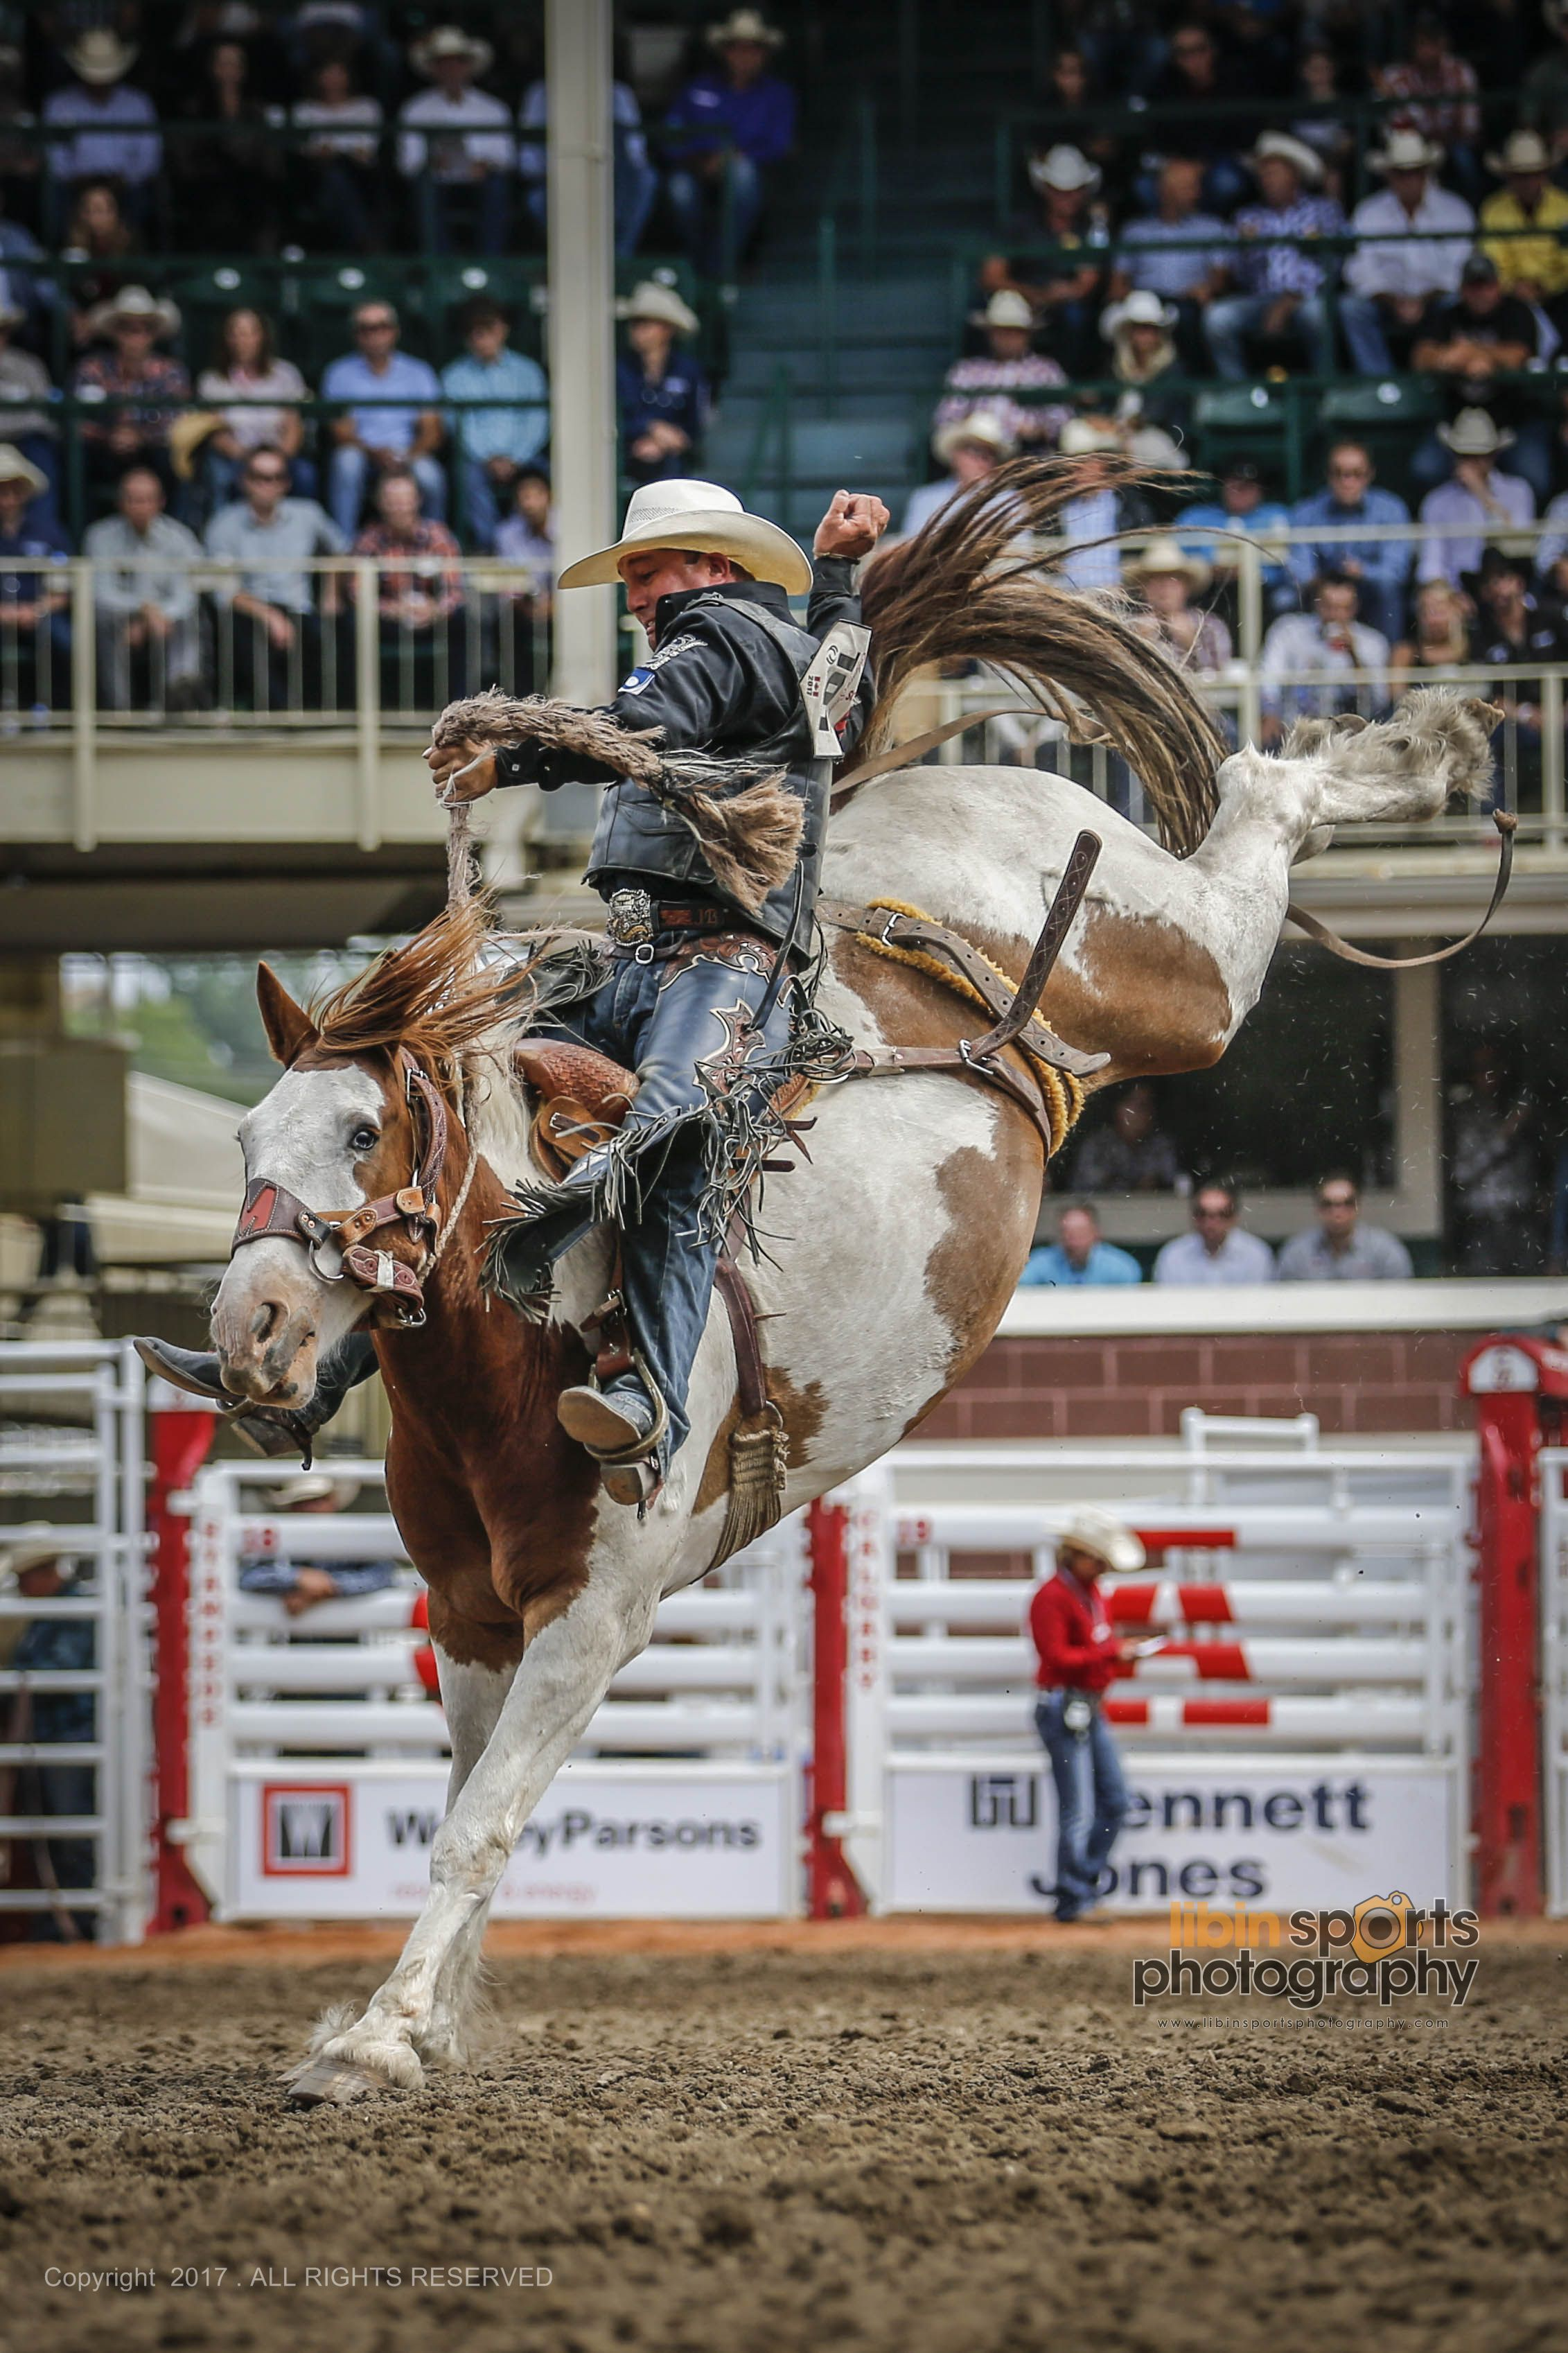 Calgary Stampede 2017 Rodeo Rodeo Rodeo Cowboys